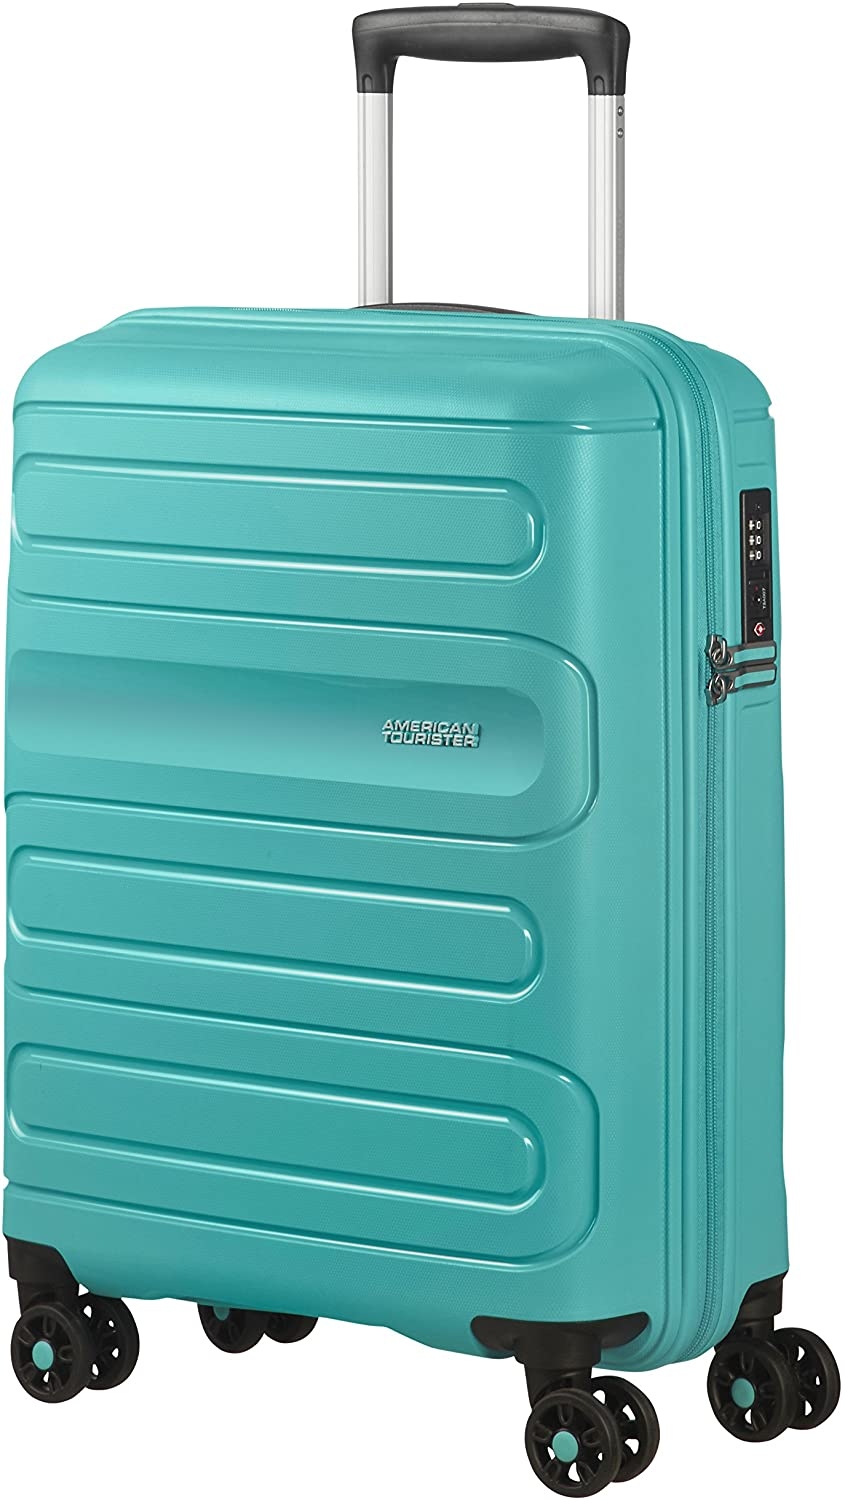 American Tourister Hand Luggage, Turquoise (Aero Turquoise), Spinner S (55 cm-35 L)